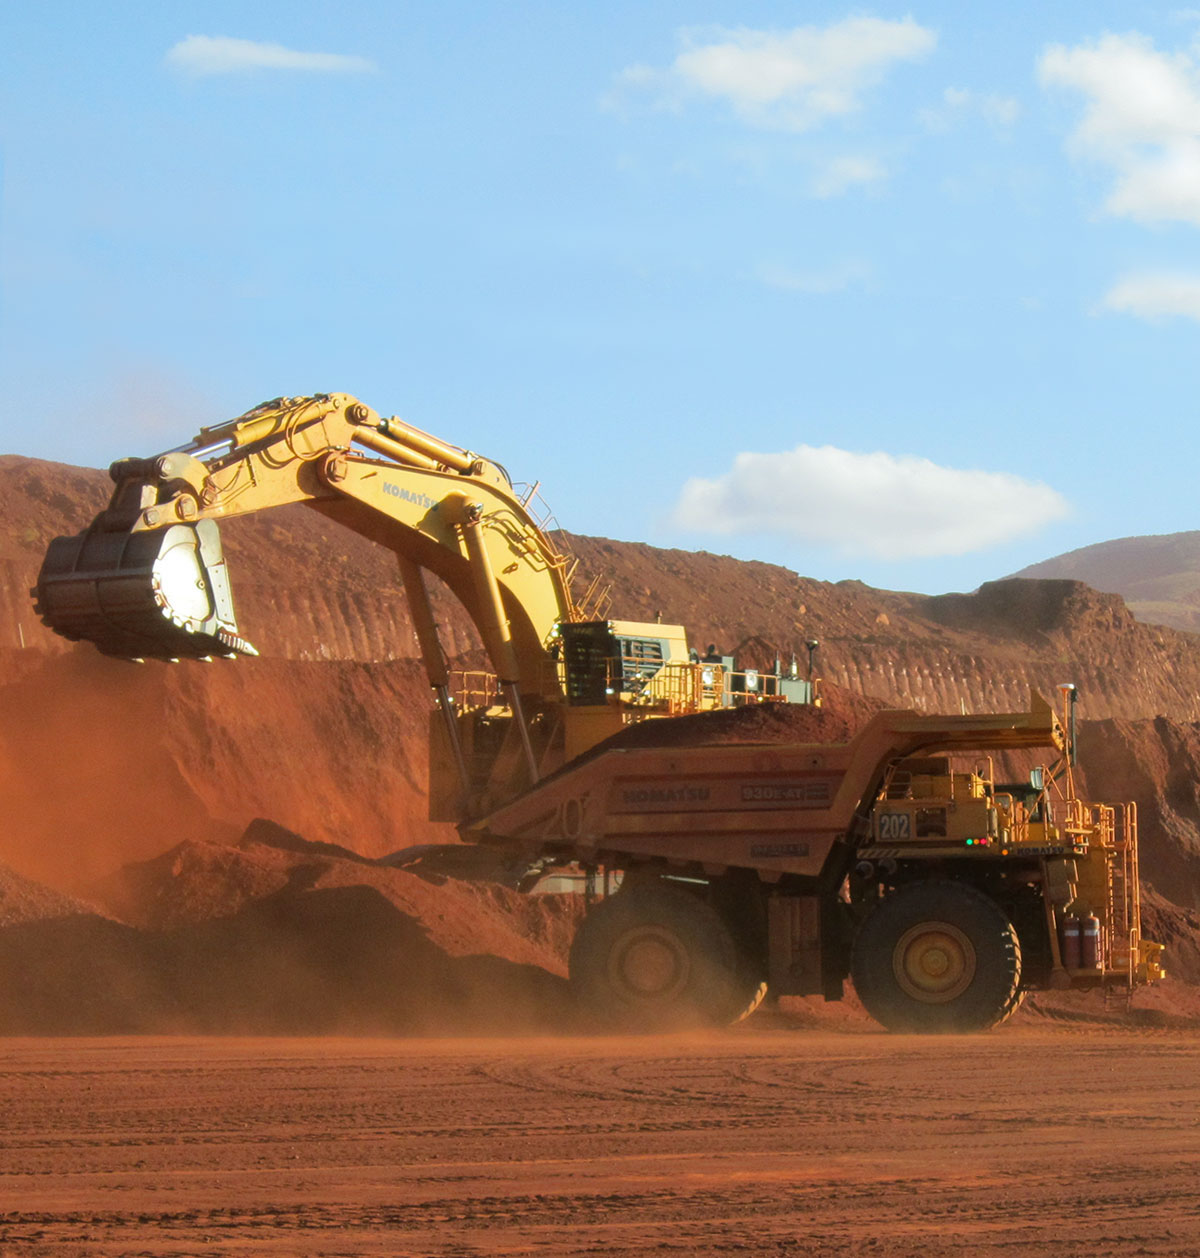 Being a big truck in the Pilbara is a tough gig. The new GE-Komatsu partnership combines overhaul processes in one workshop. The take out? Life expectancy of high-value remanufactured parts will be extended and downtime for propulsion systems will be significantly reduced. Photo: Komatsu.